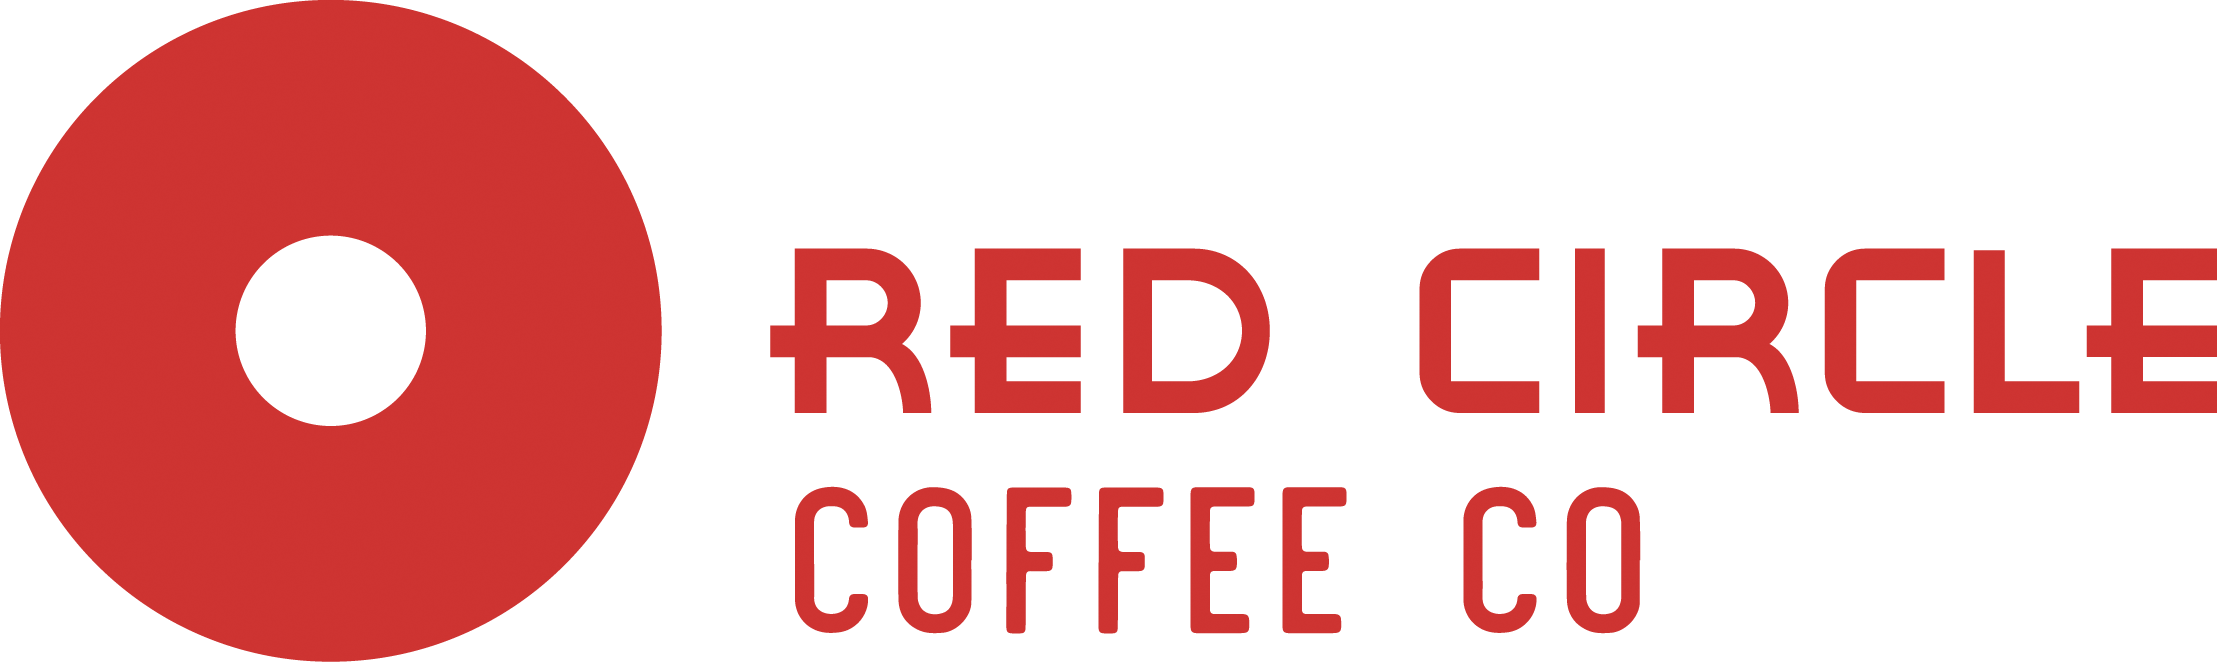 Red Circle Coffee Co. Logo